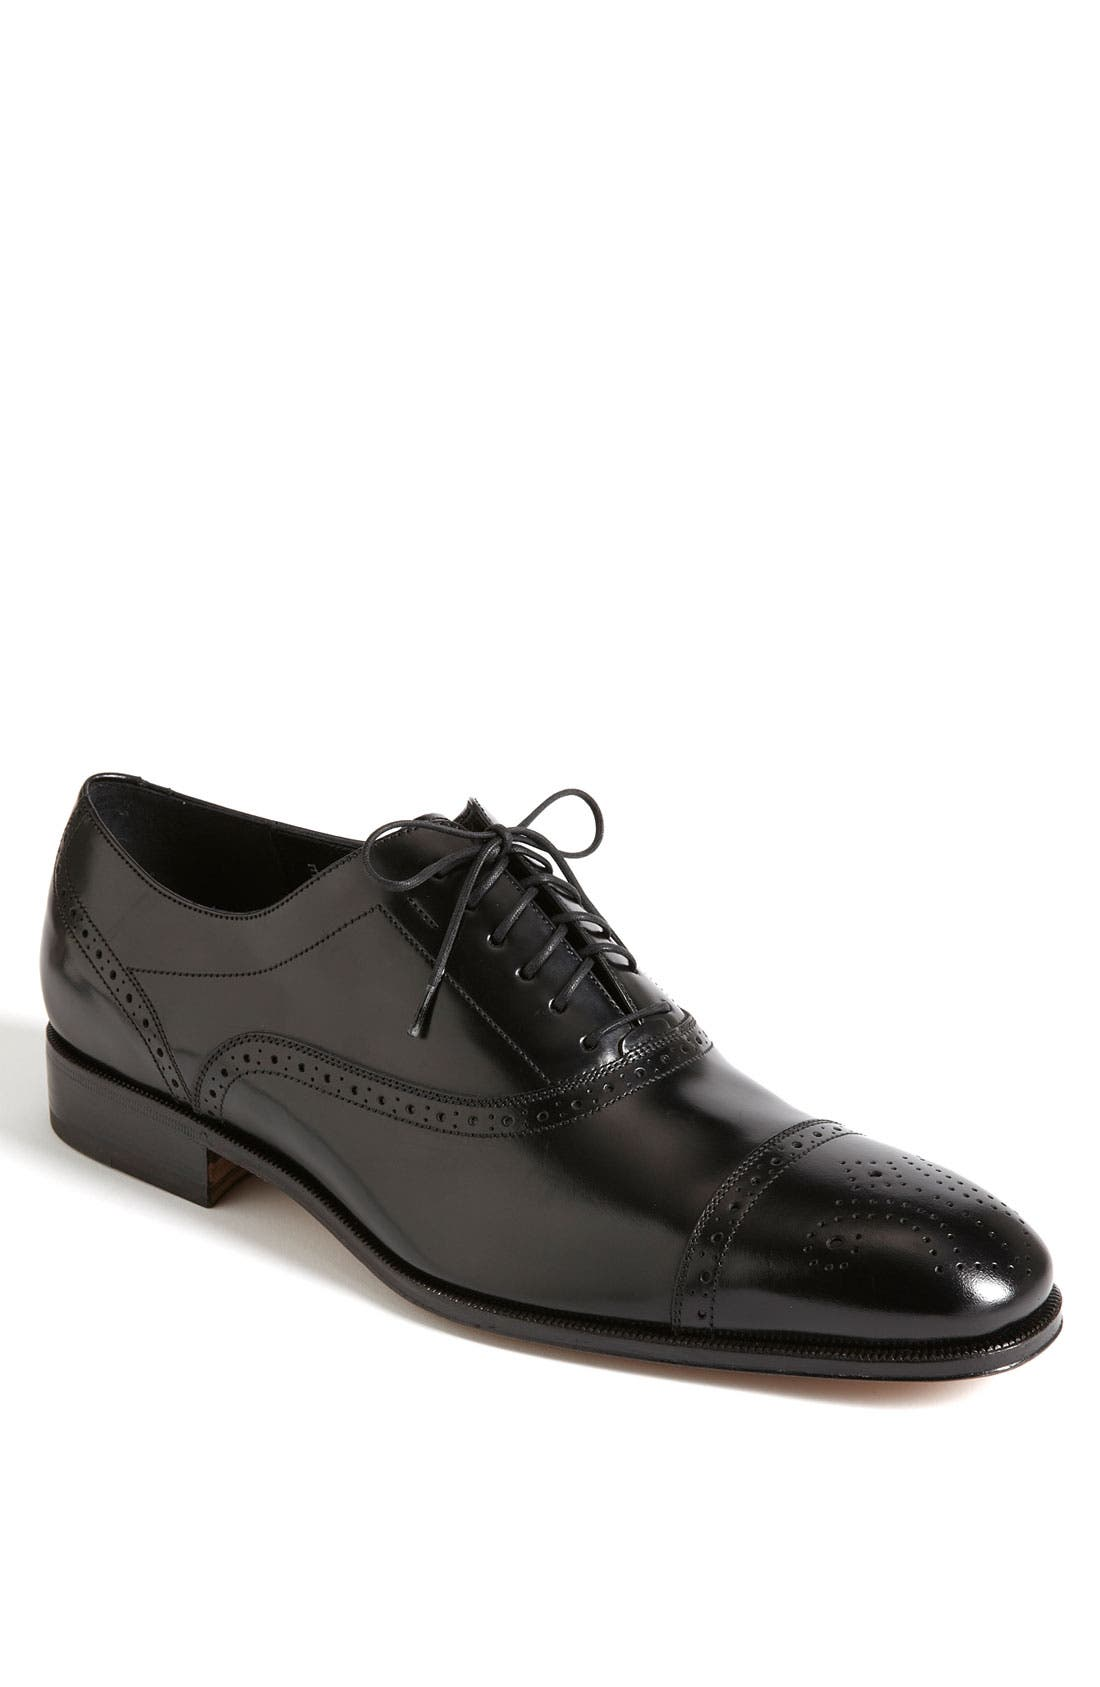 Alternate Image 1 Selected - Salvatore Ferragamo 'Caesy' Cap Toe Oxford